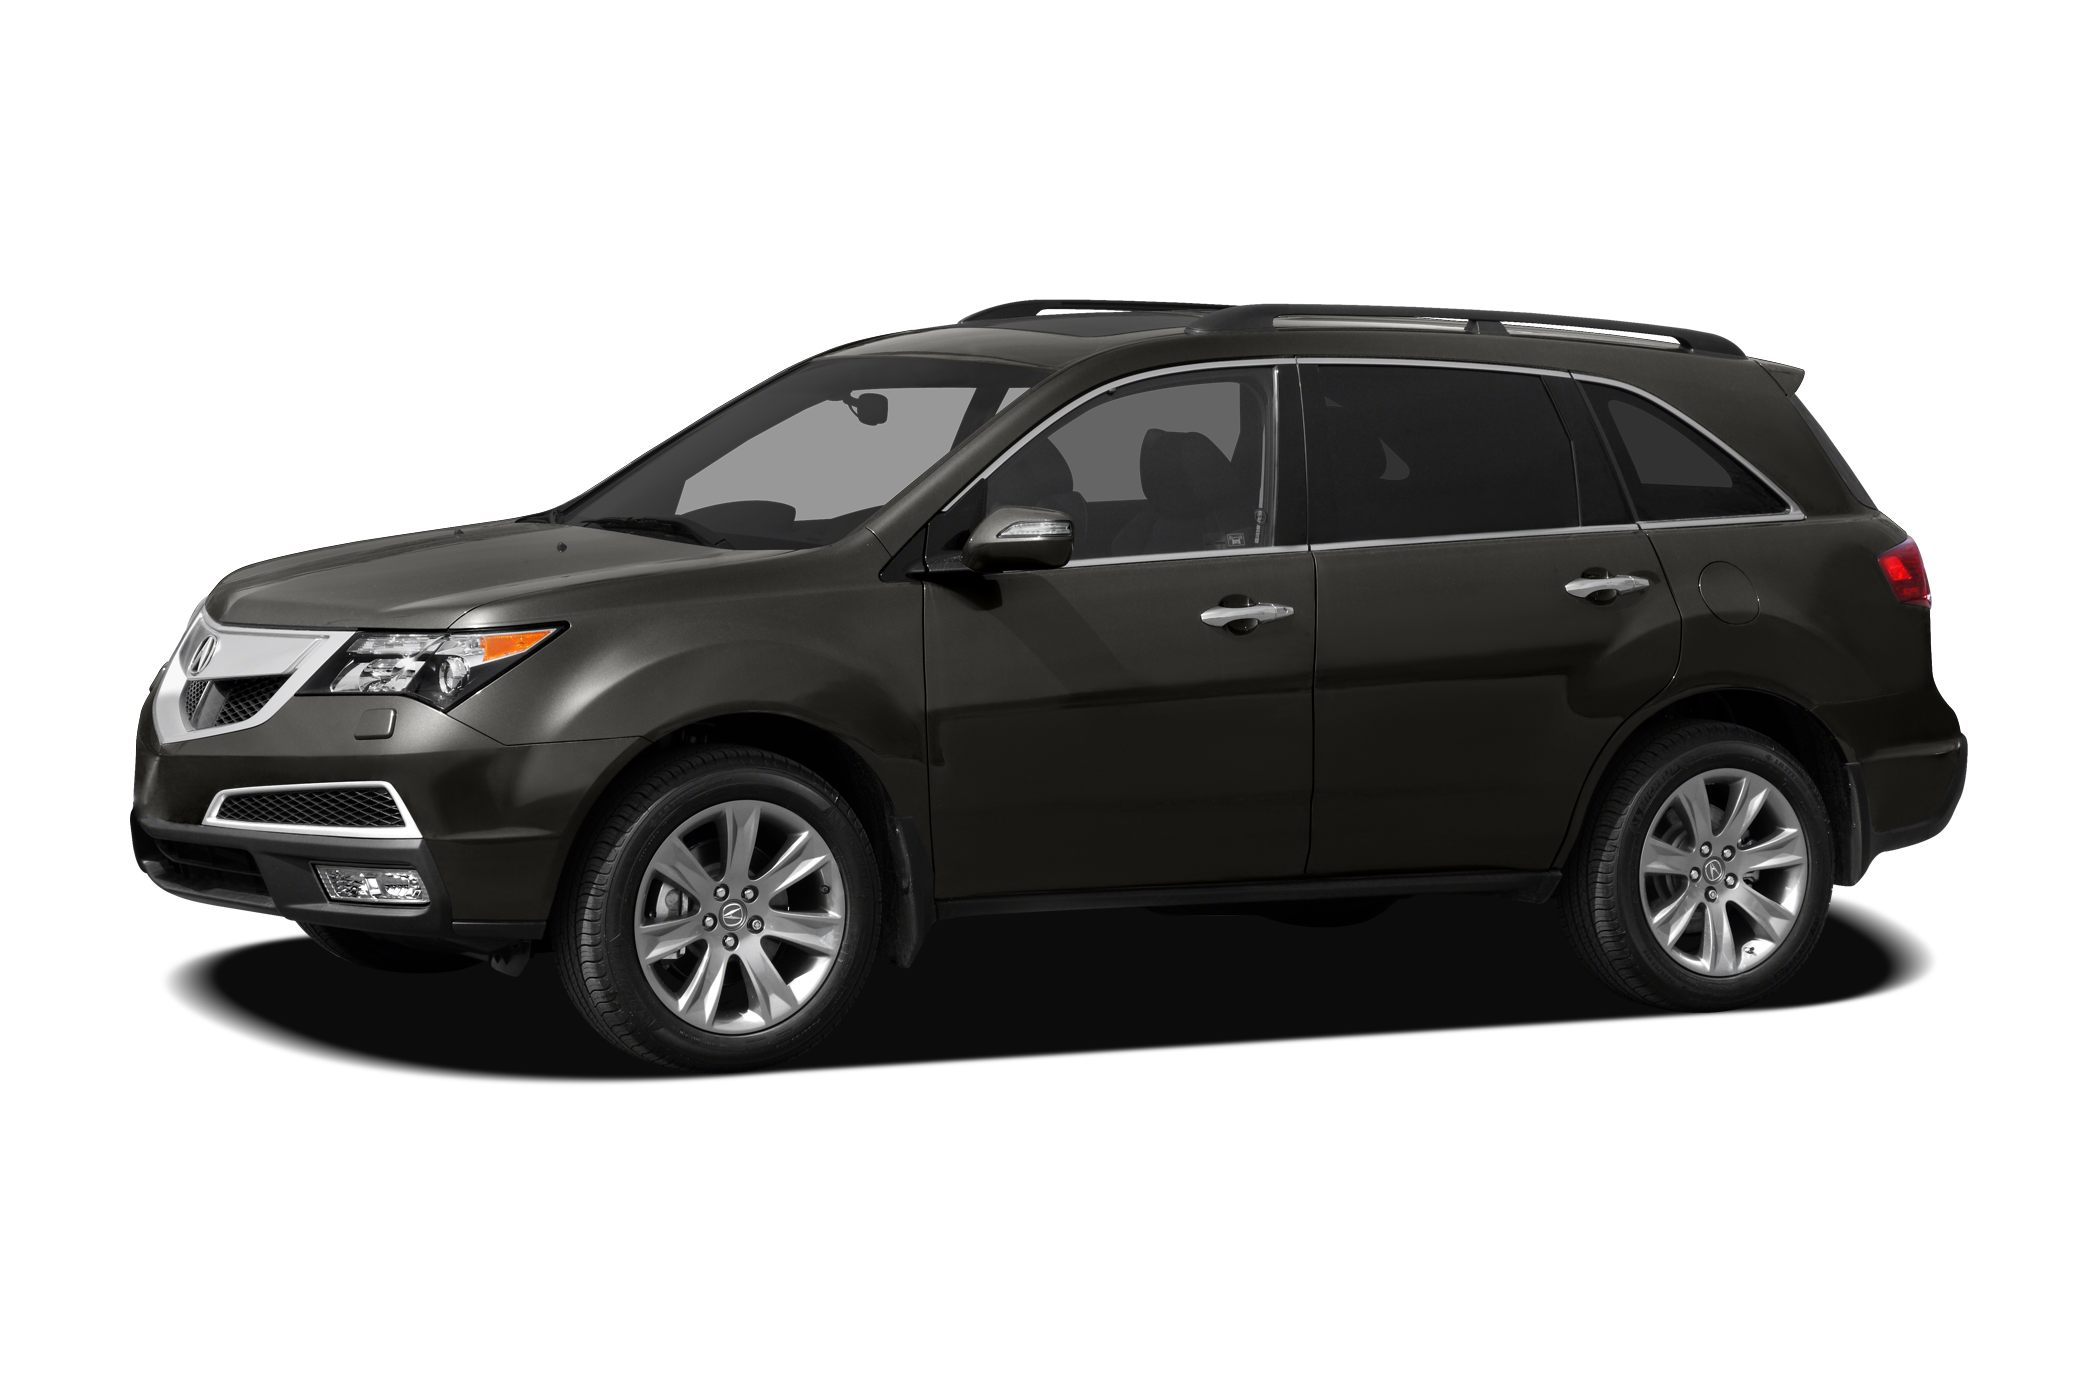 2017 Acura Mdx Pricing And Specs